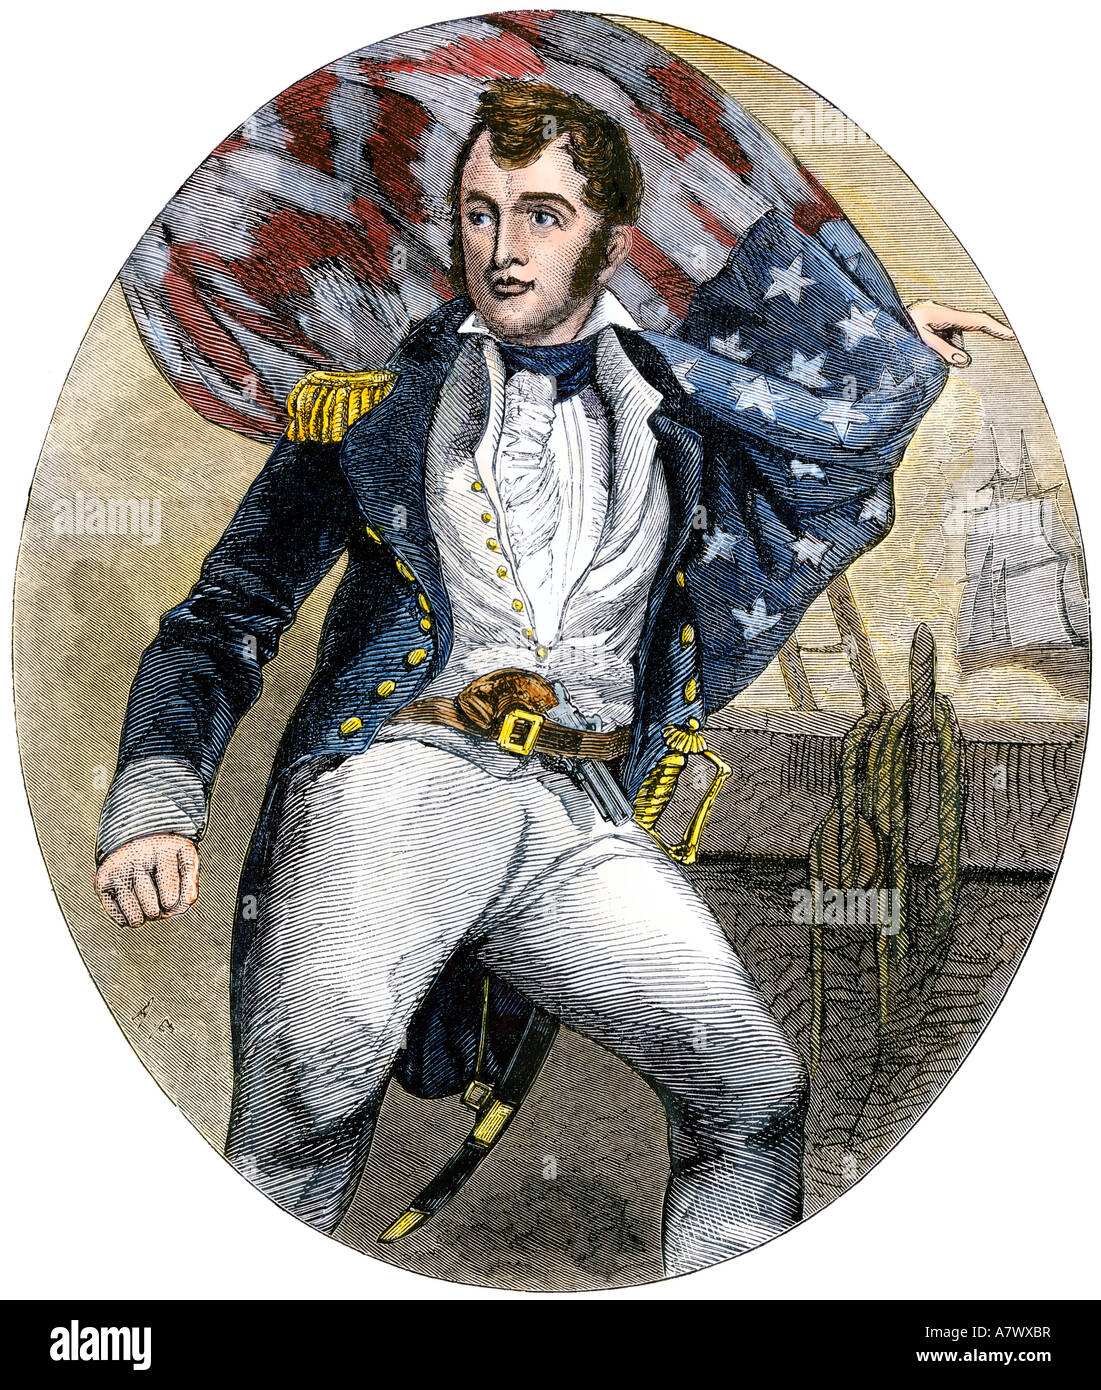 Oliver H. Perry in the rigging, War of 1812 - Stock Image